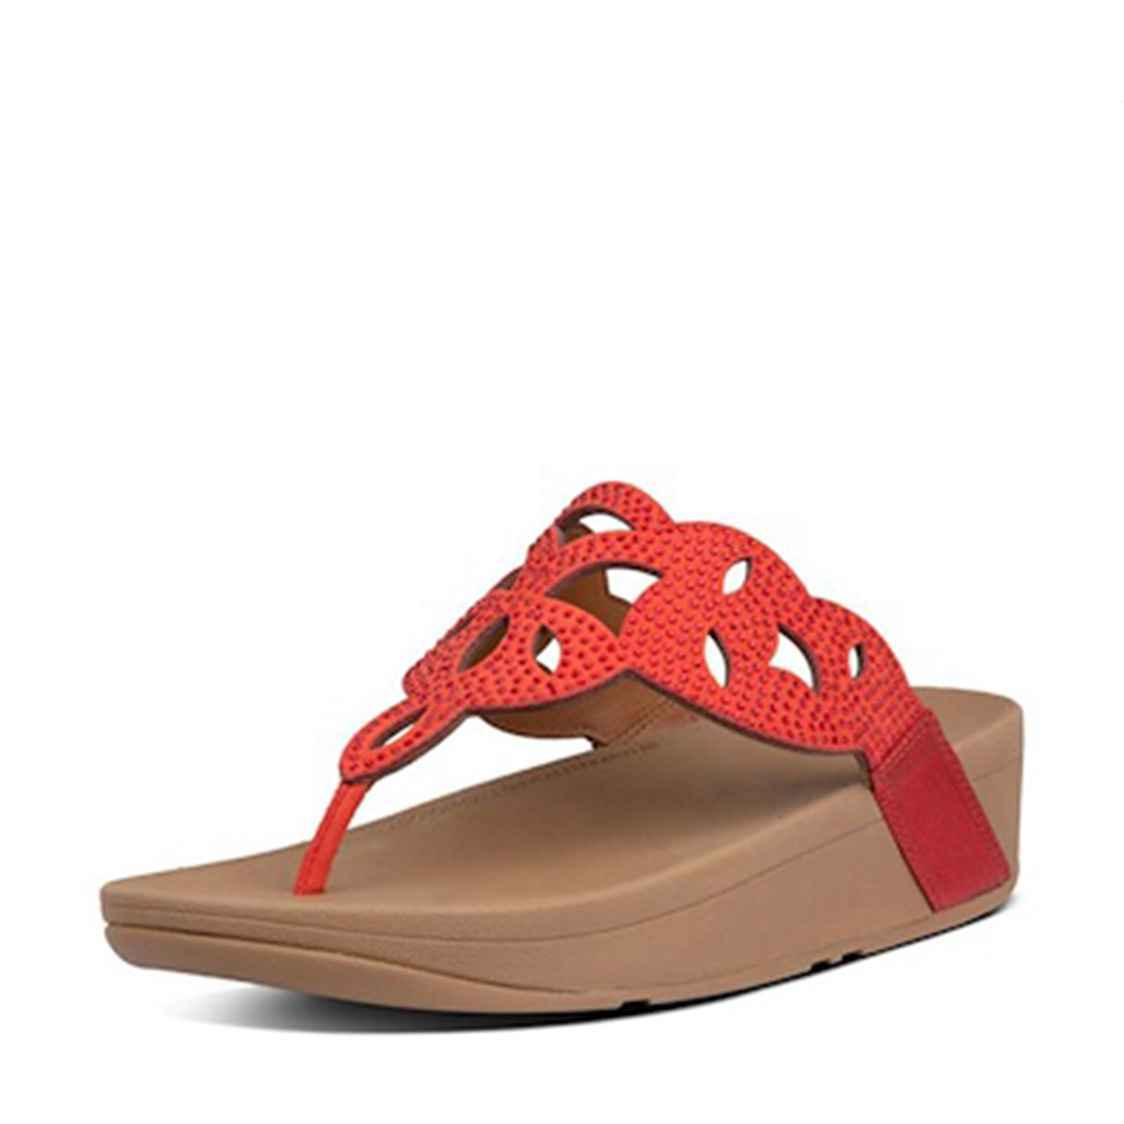 FitFlop Elora Crystal Toe-Thongs Red